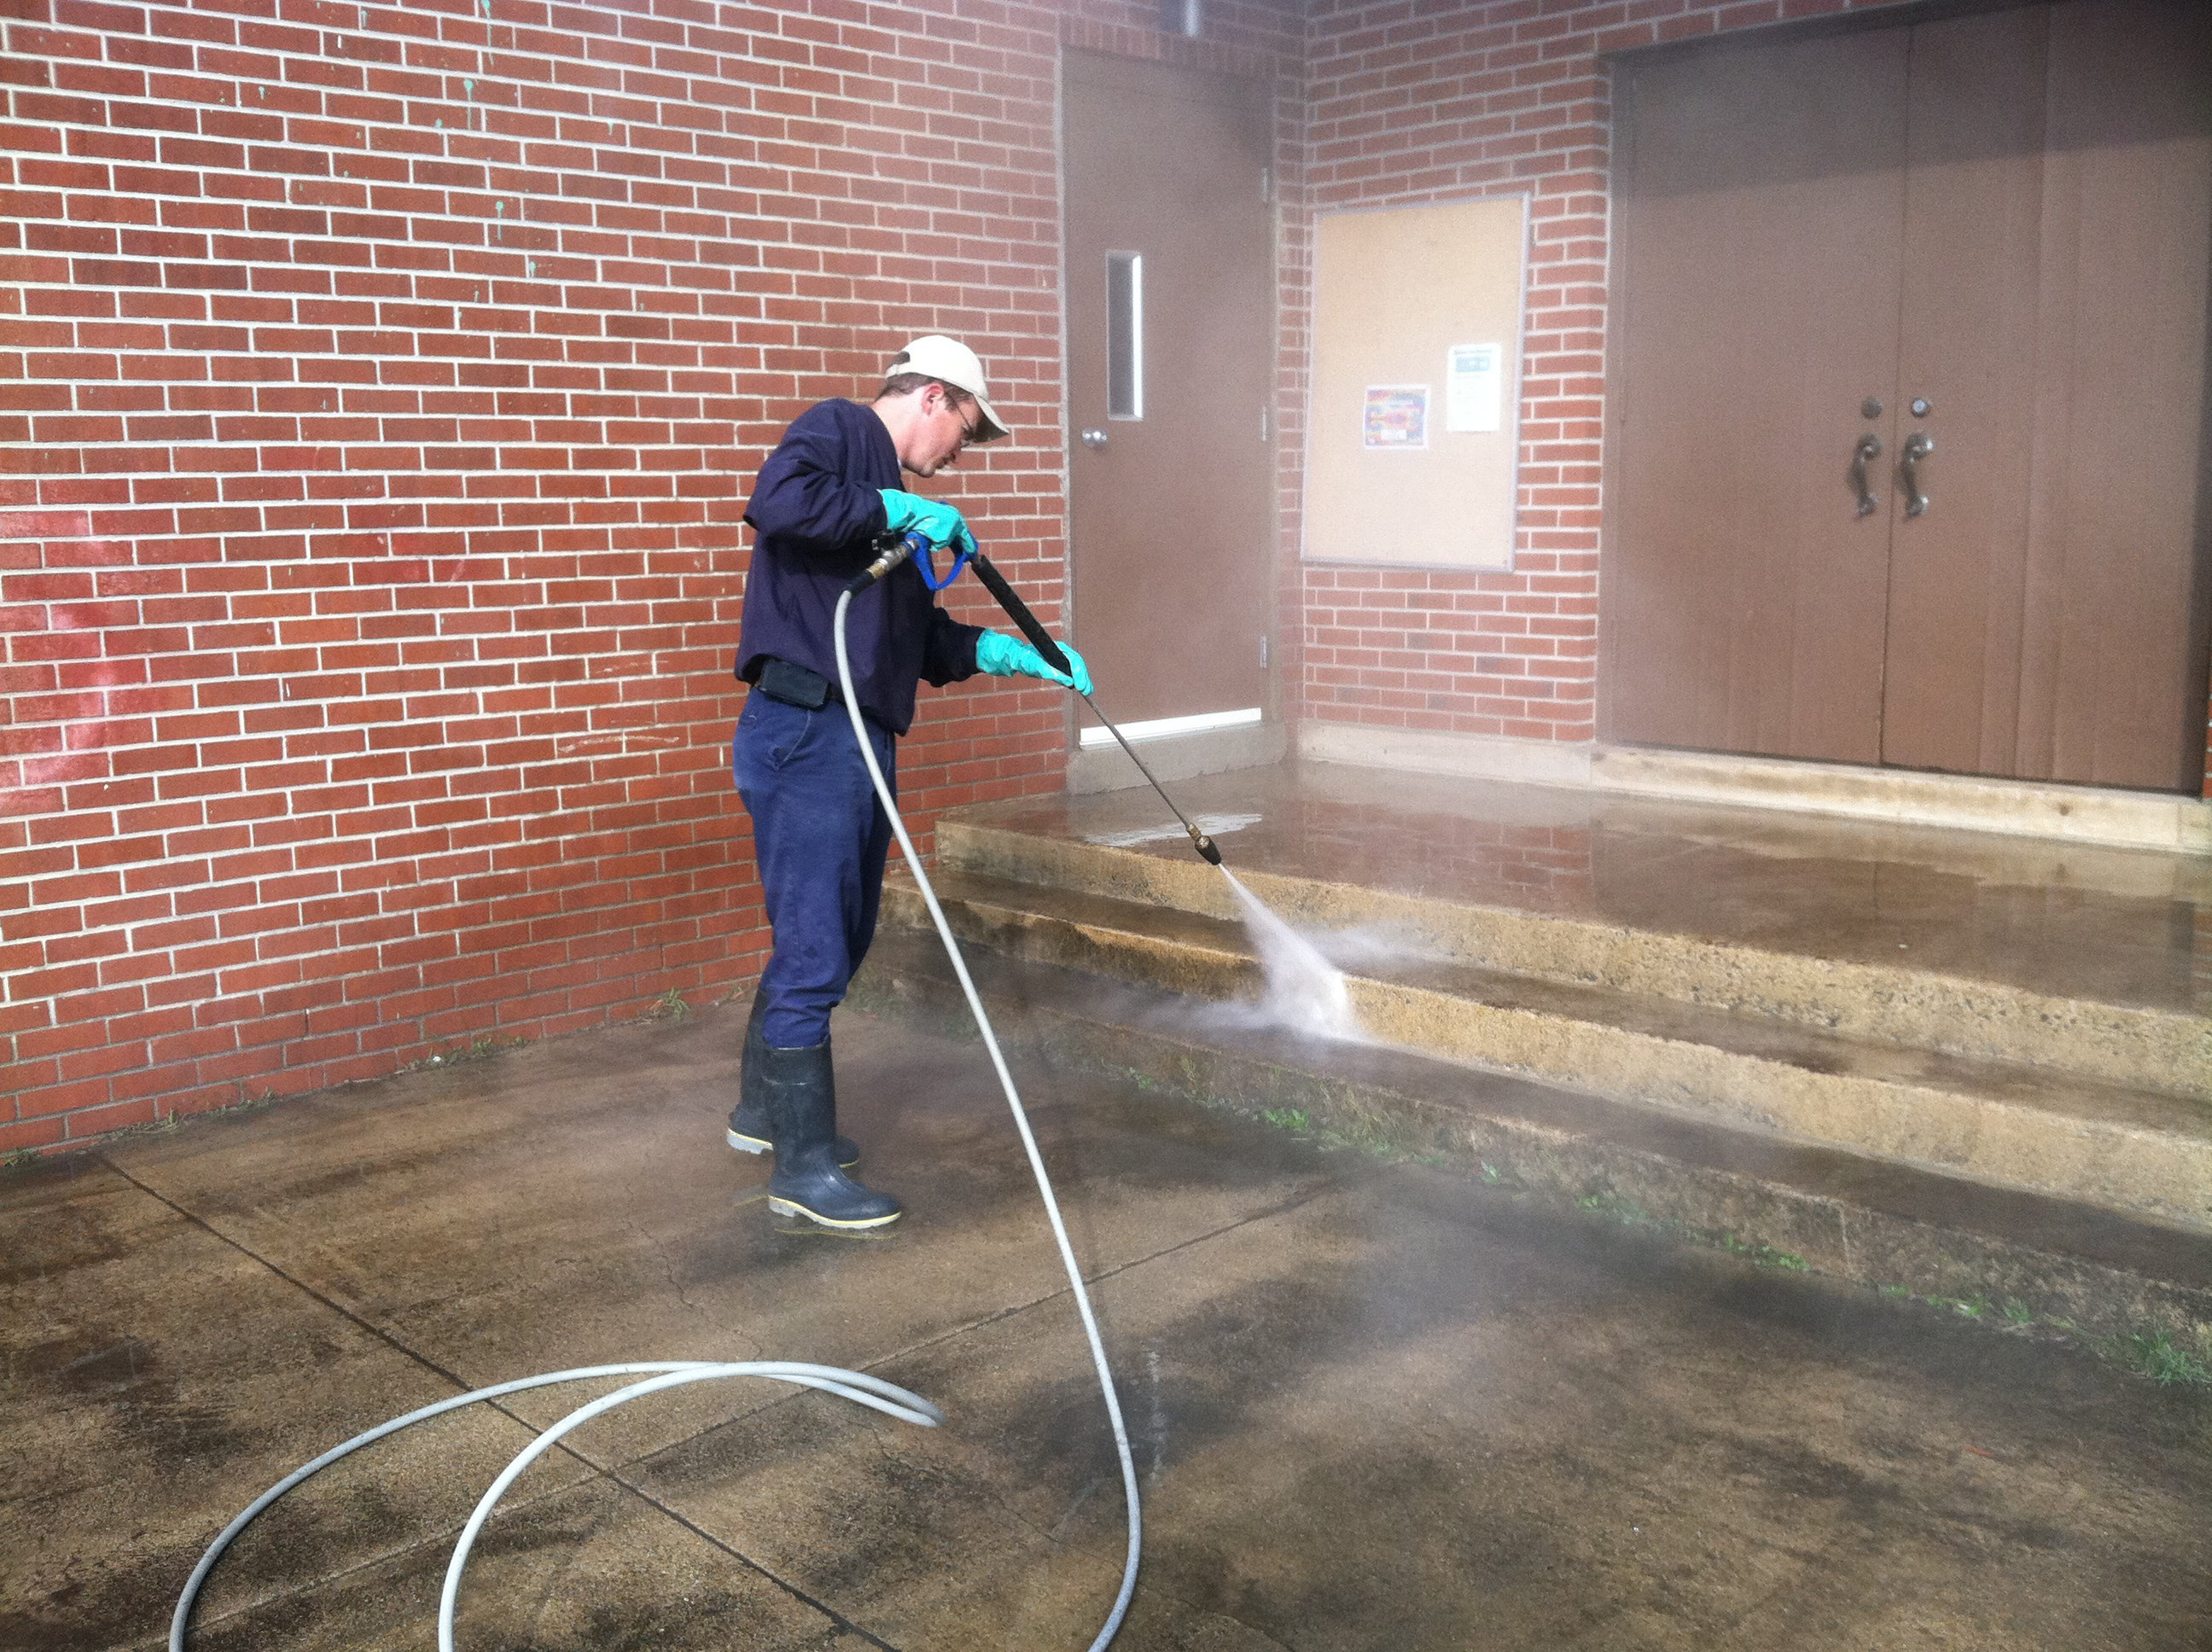 Cleaning Patio Stones Pressure Washer Patio Ideas